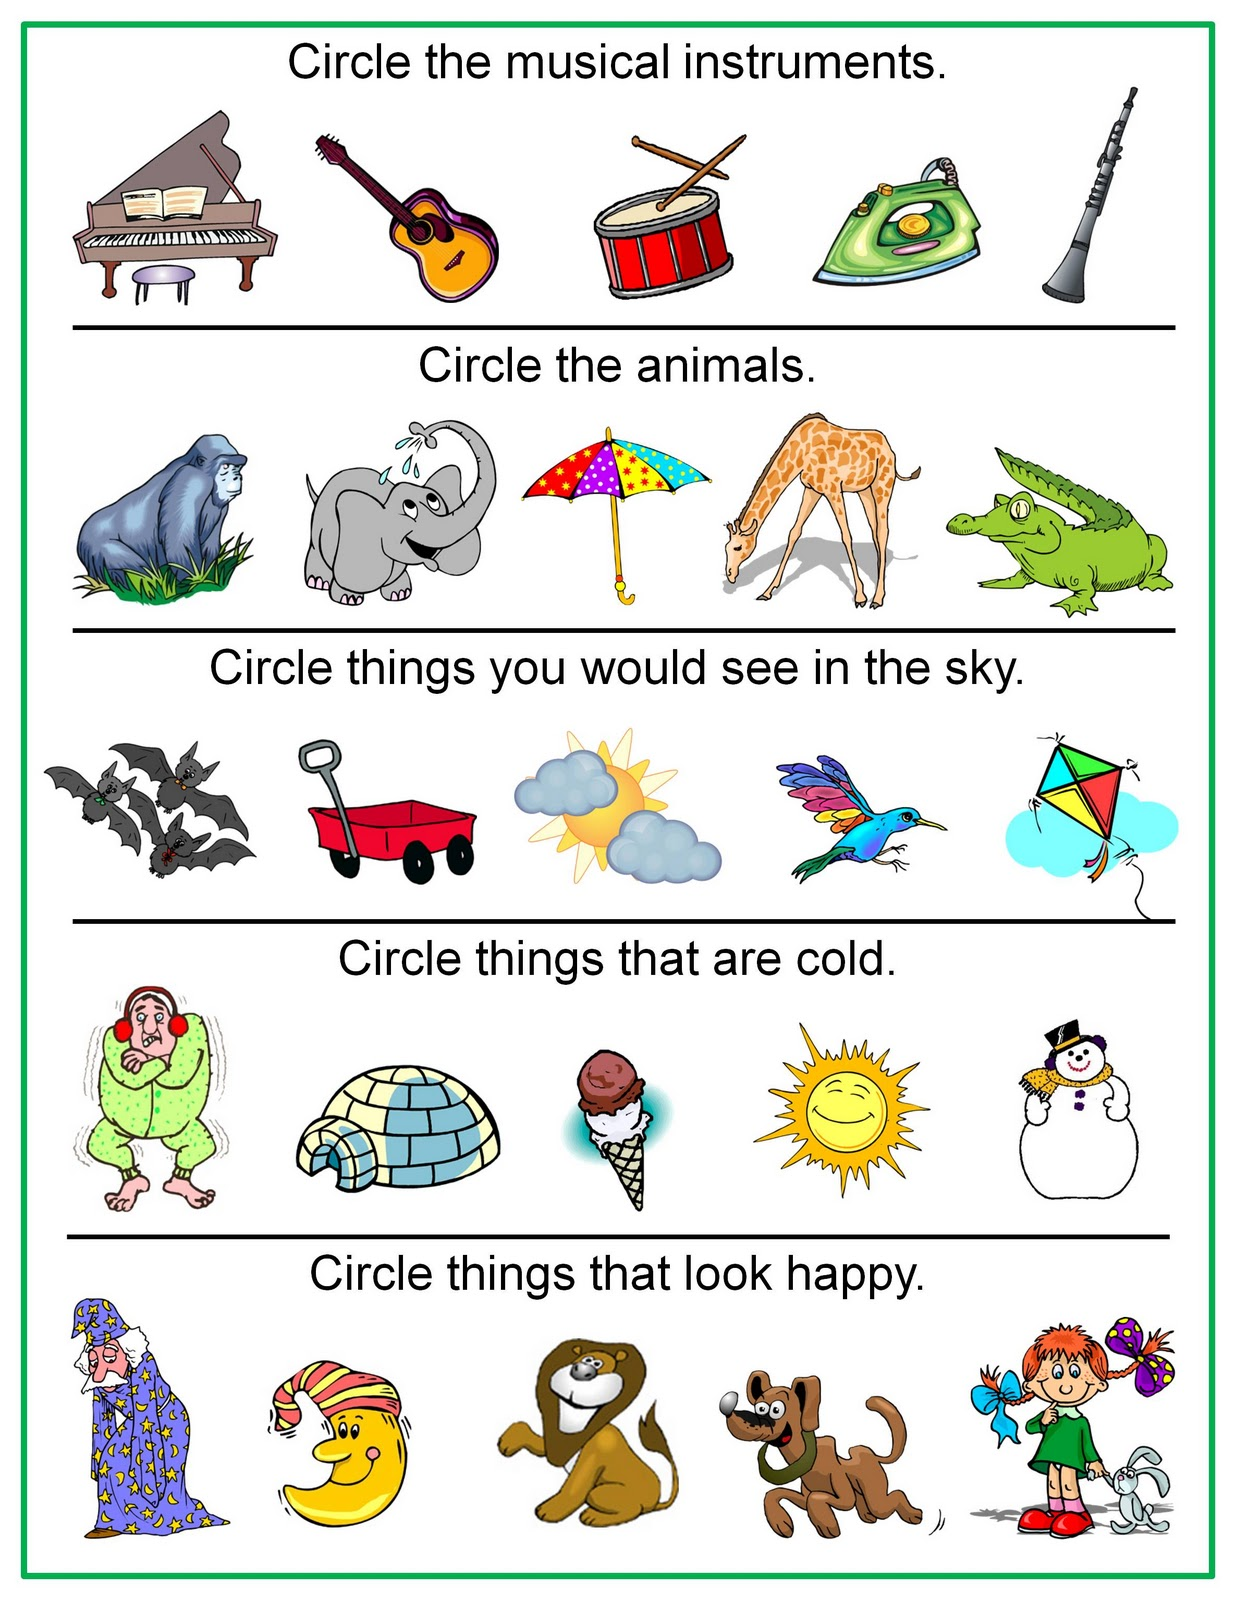 worksheet Sorting Worksheets For Kindergarten sorting worksheets for kindergarten abitlikethis describing objects worksheet images frompo